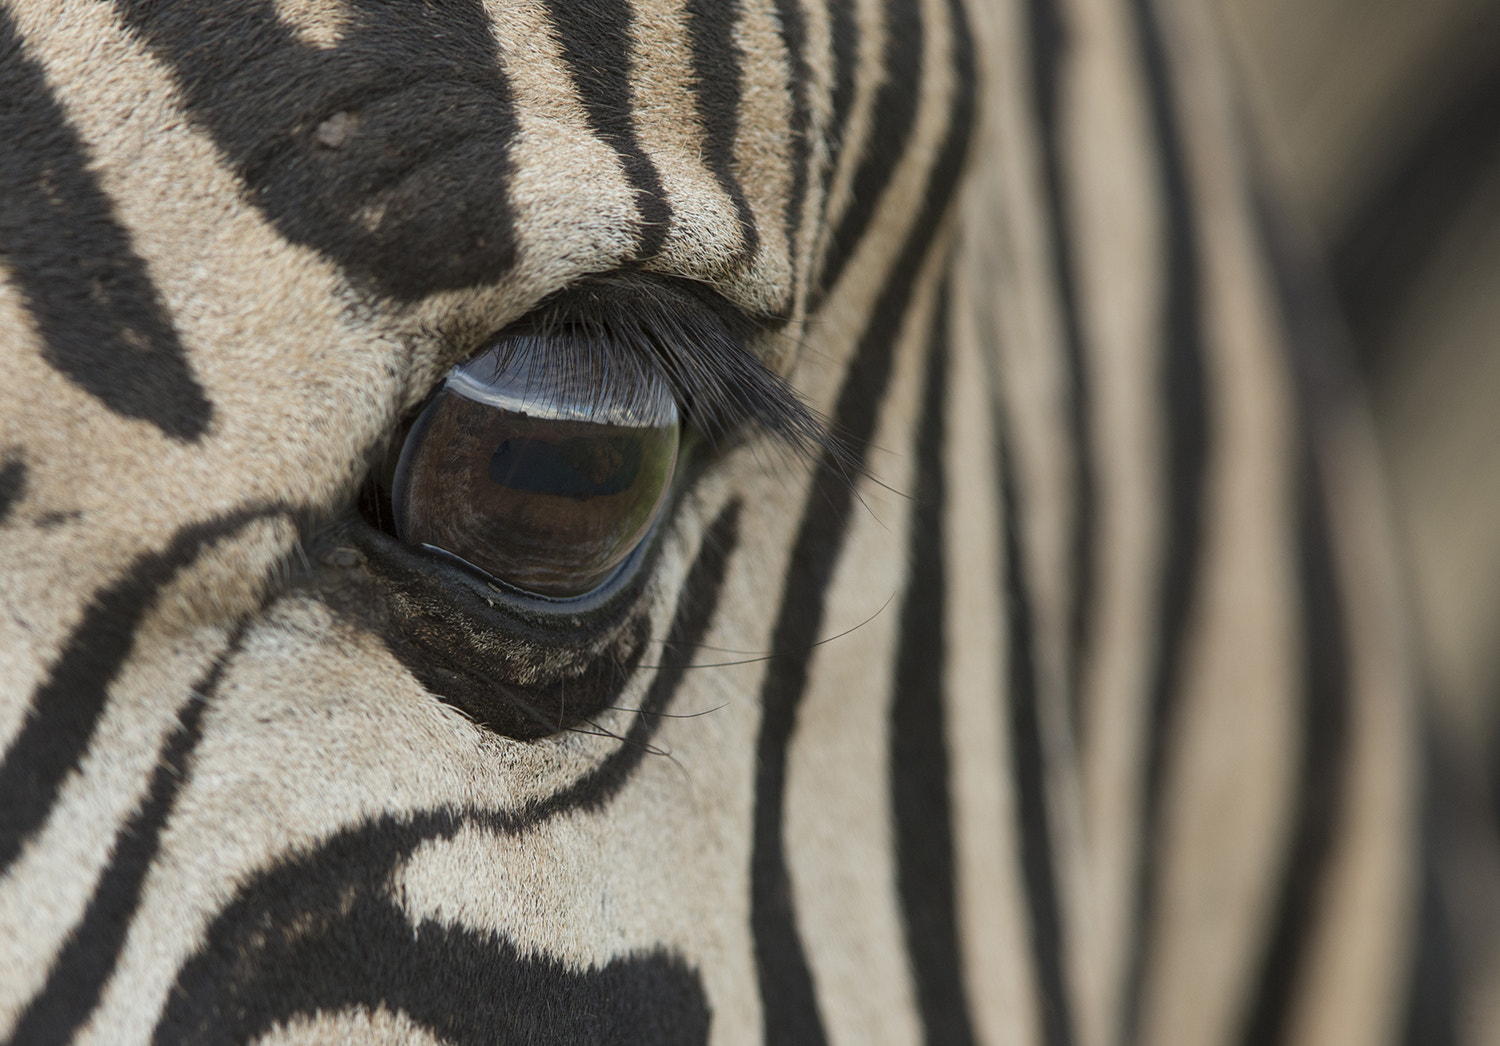 Photograph Zebra vision by Loretta Steyn on 500px